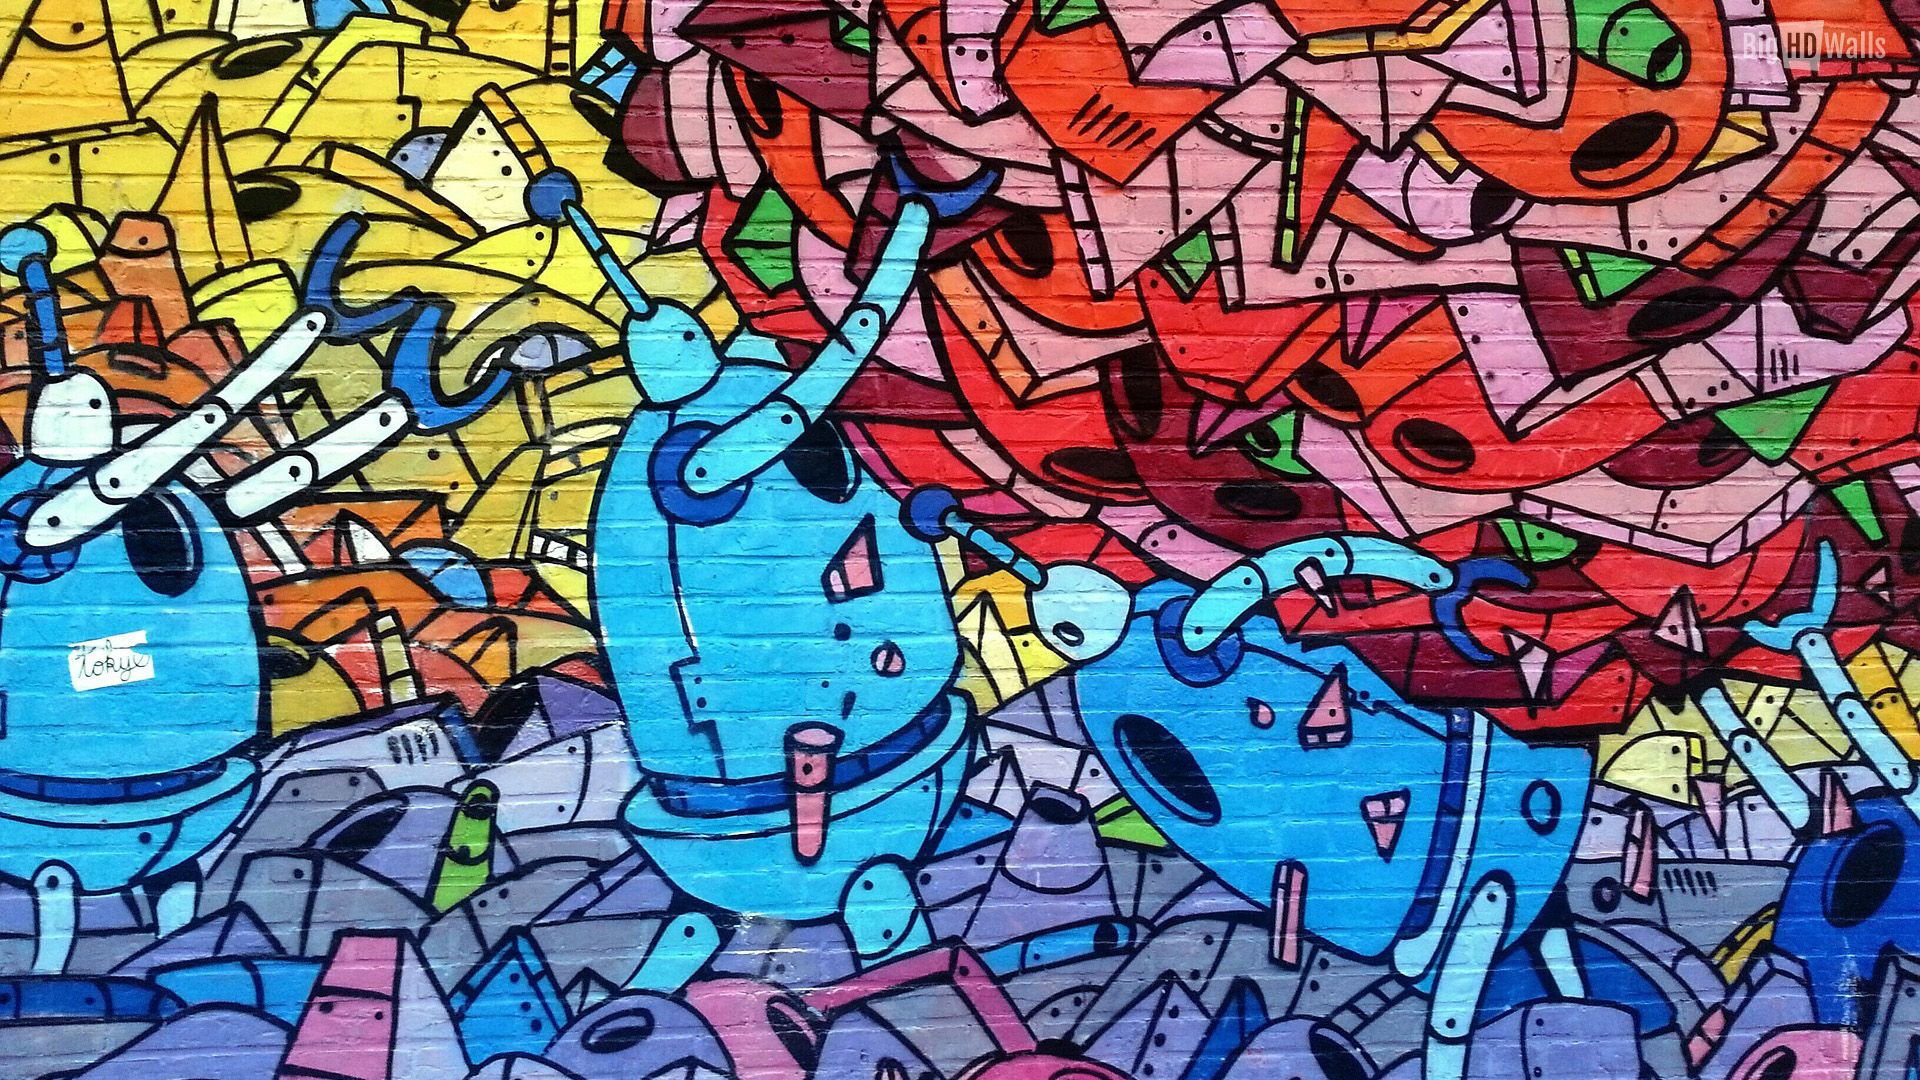 Graffiti Art Wallpapers Hd Resolution For Desktop Wallpaper